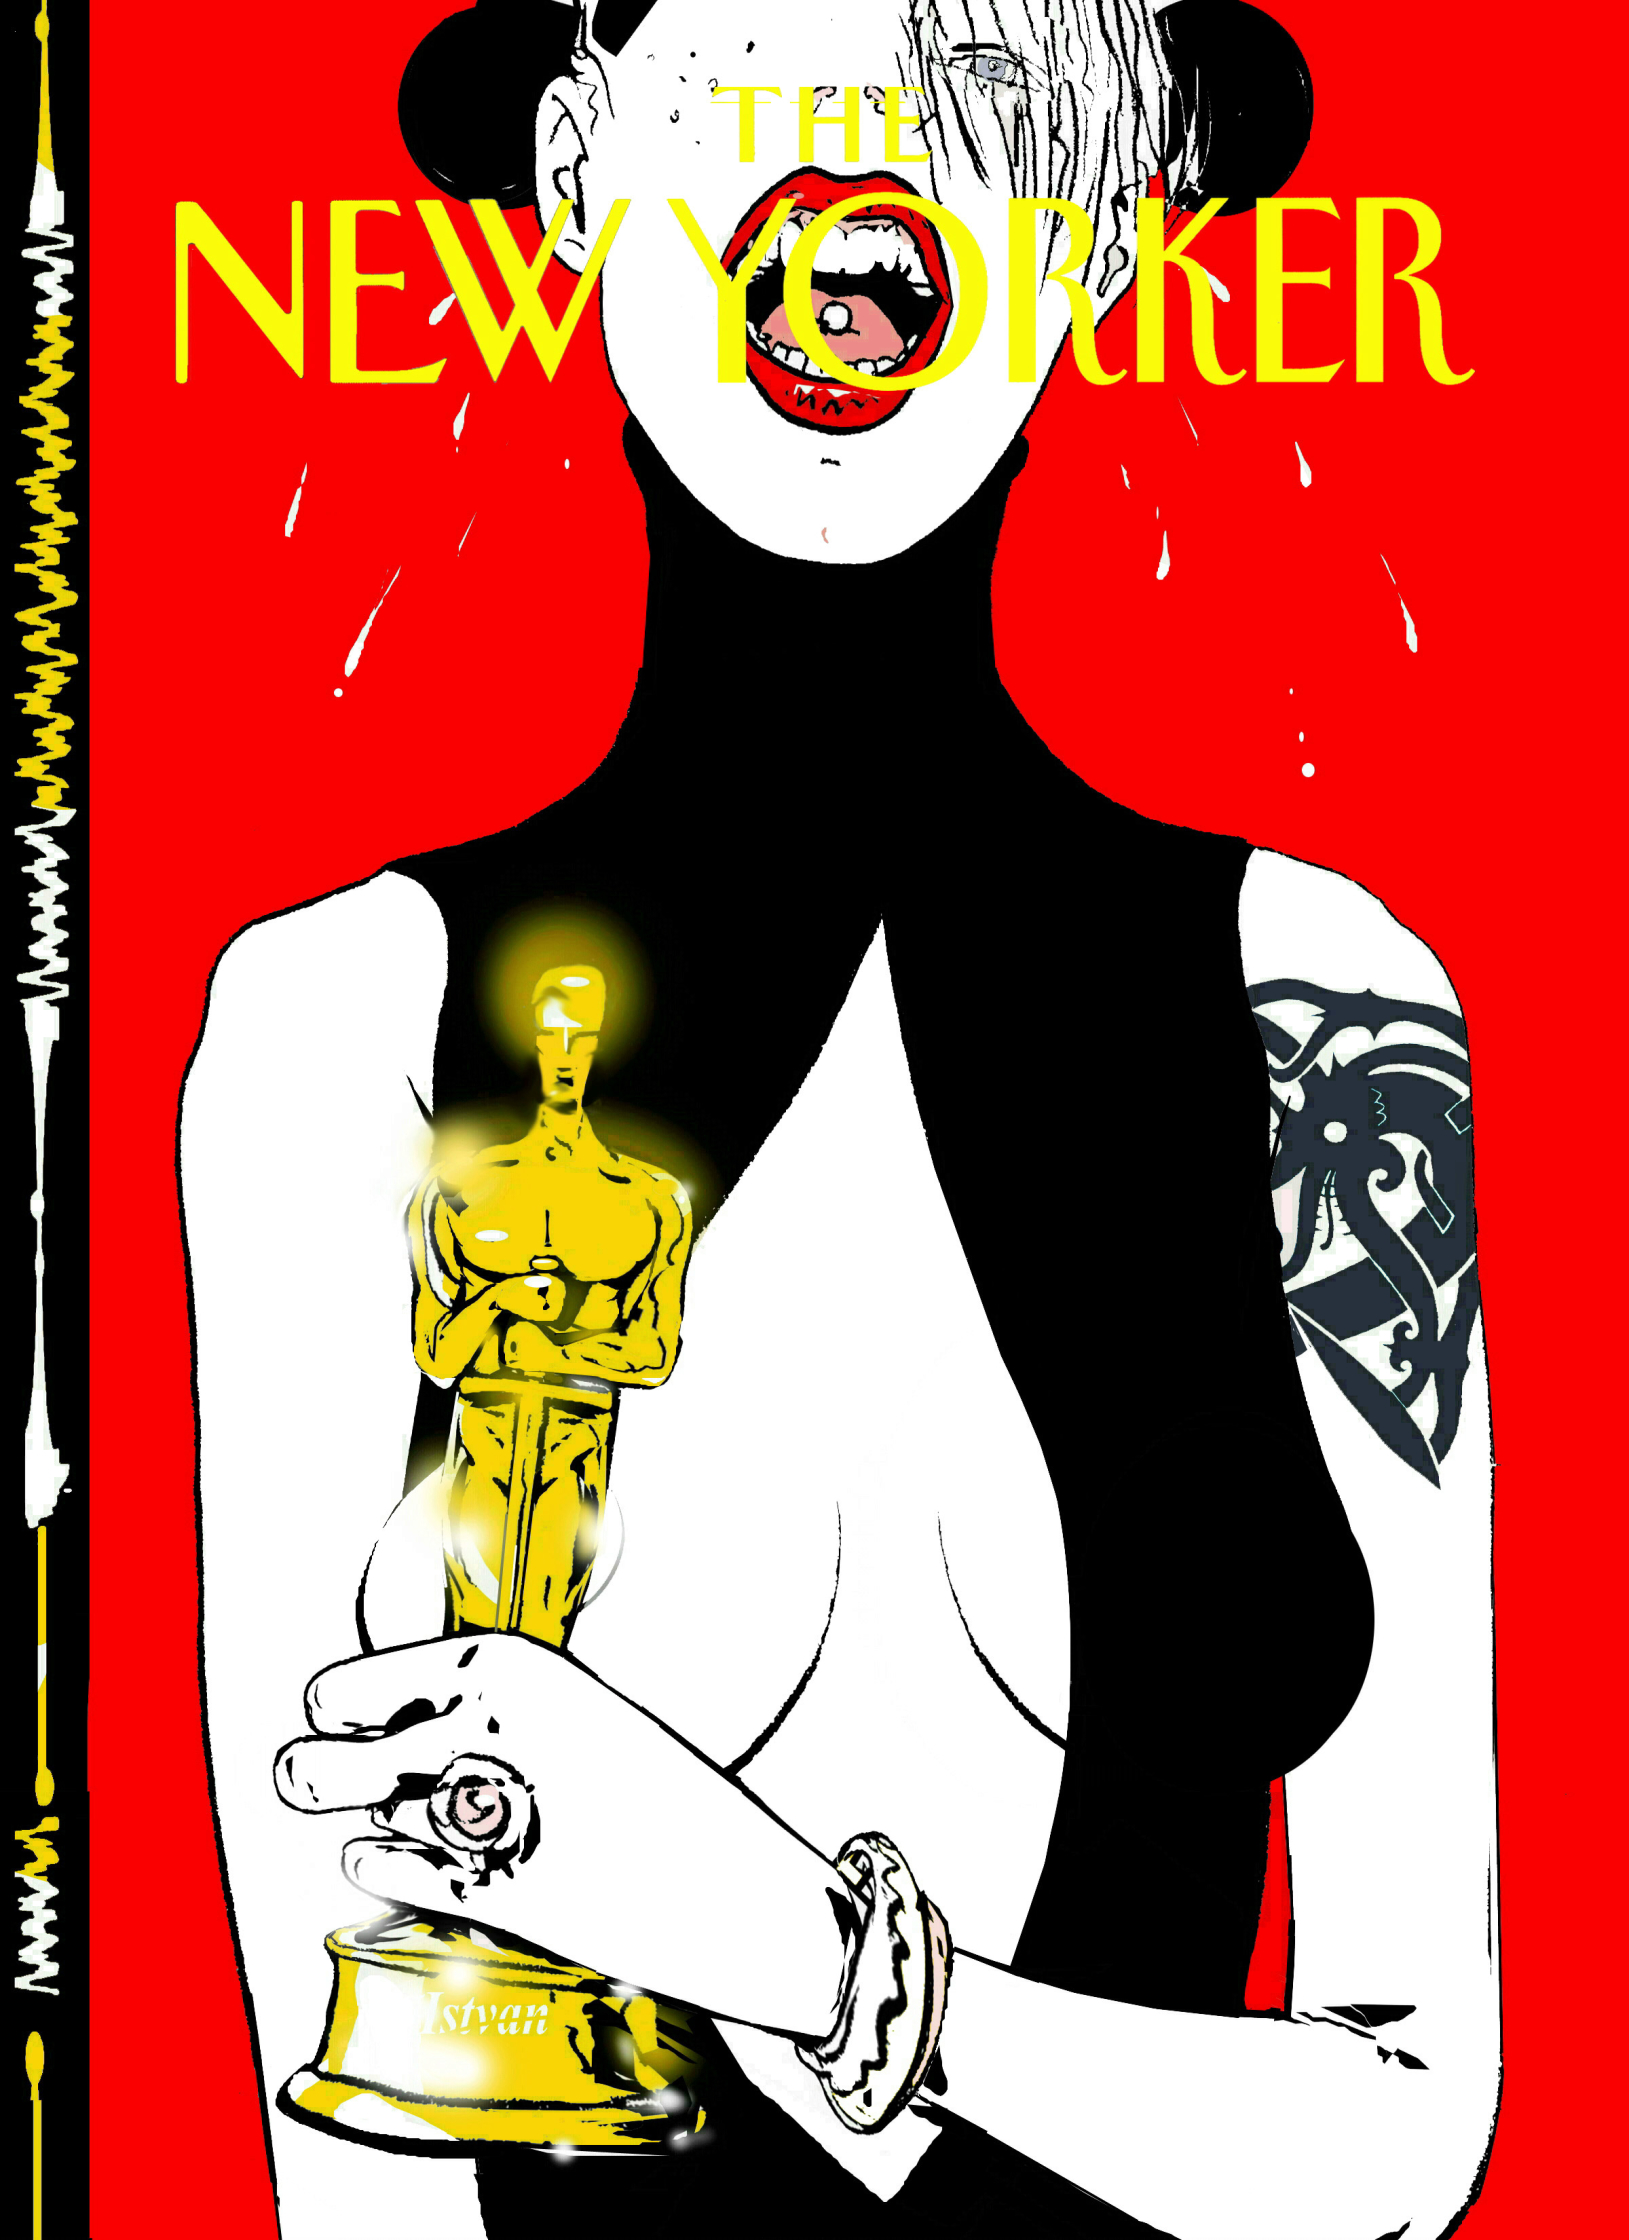 Oscar The New Yorker